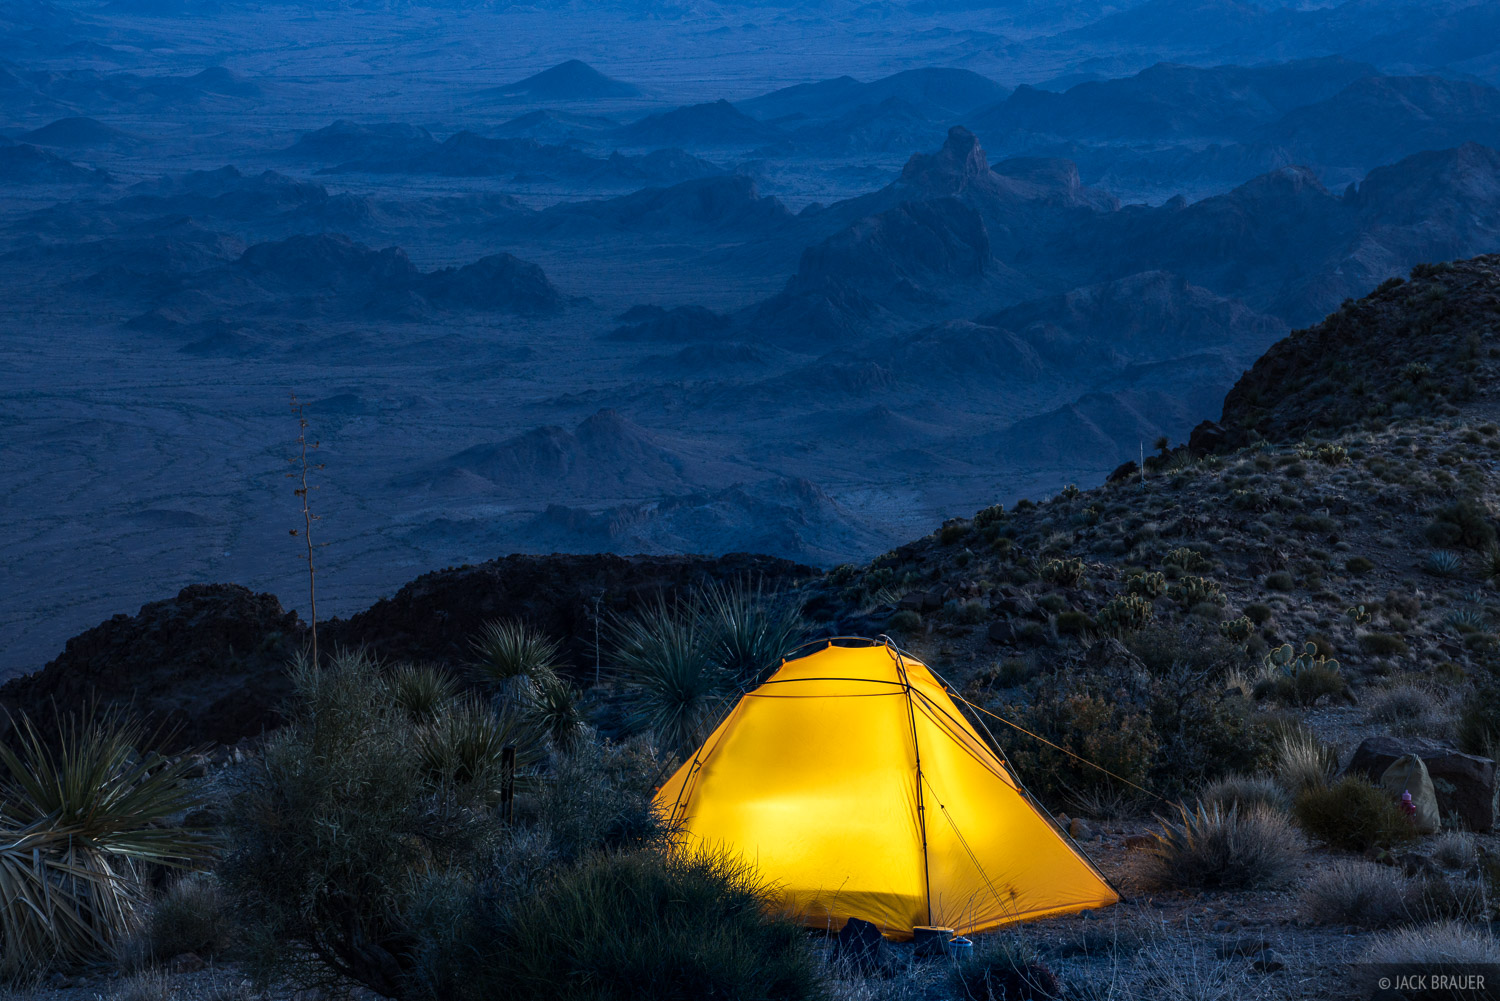 Arizona, Kofa National Wildlife Refuge, Signal Peak, tent, Kofa Mountains, photo